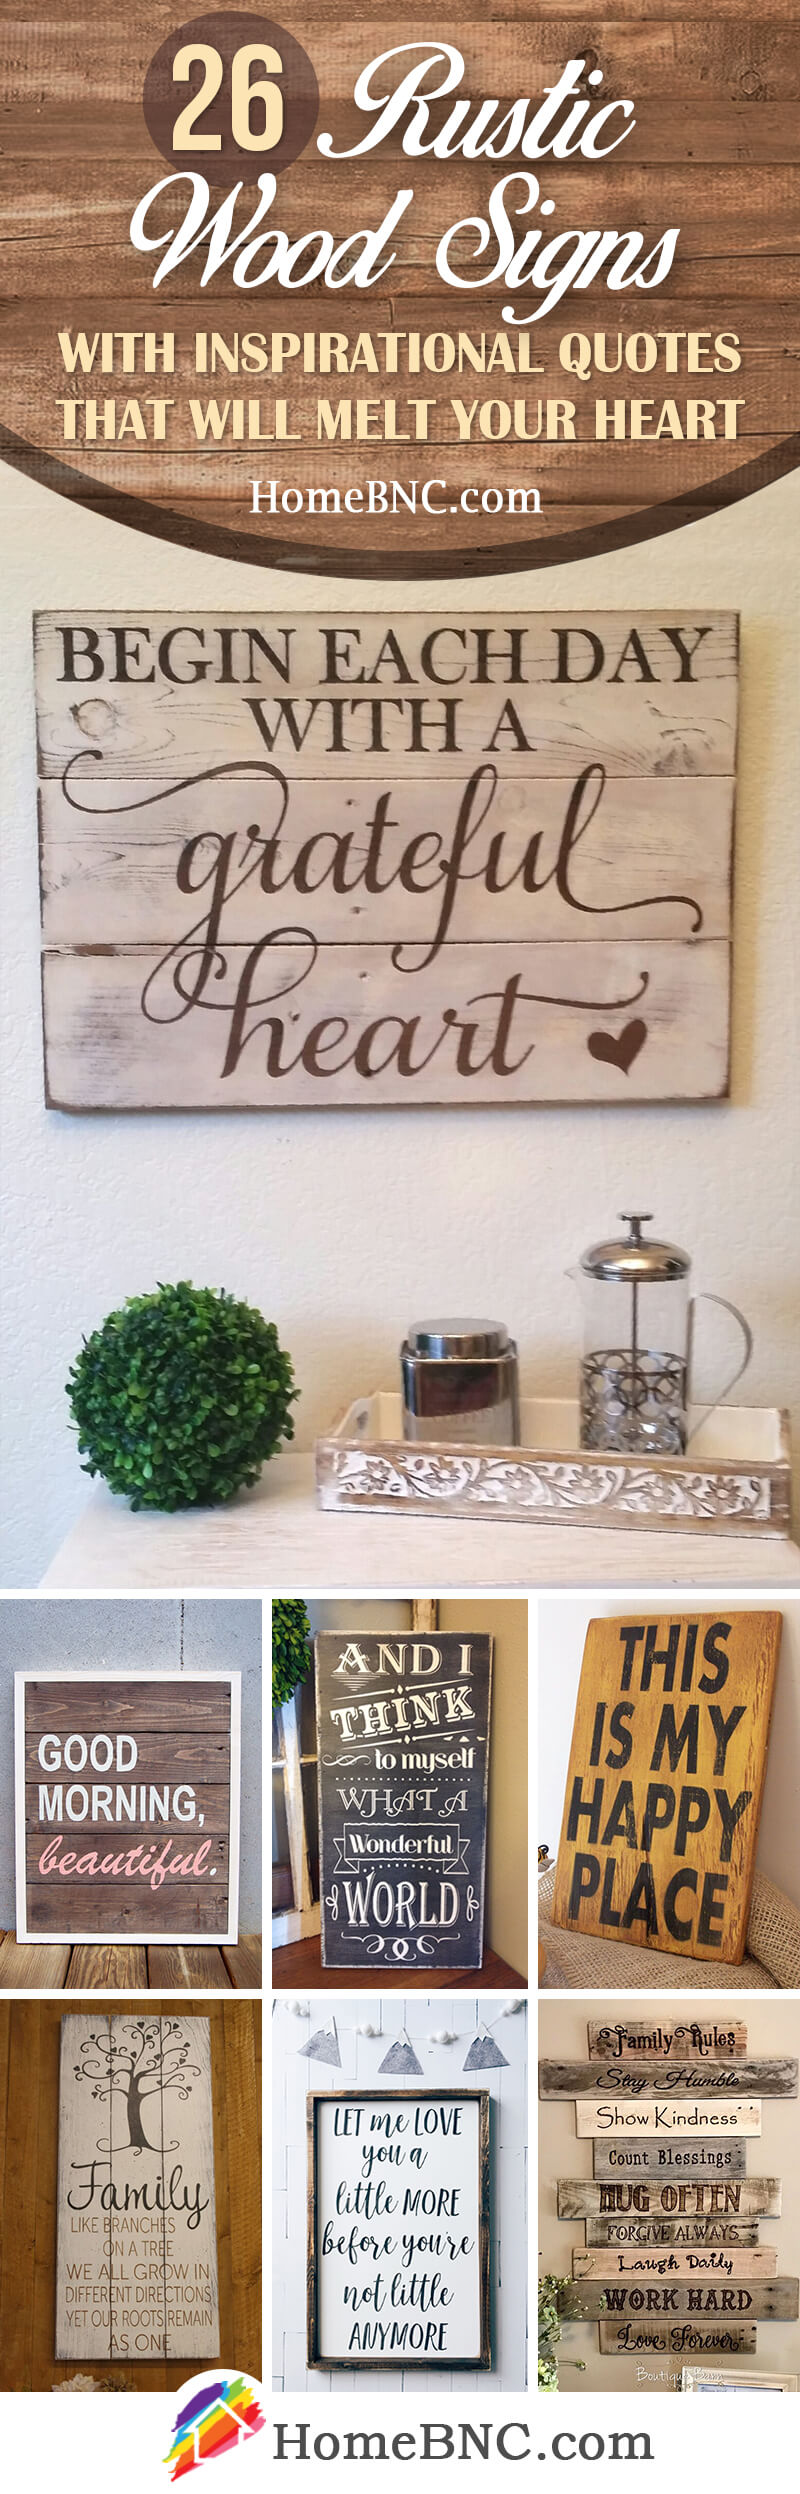 26 Best Rustic Wood Sign Ideas And Designs With Inspirational Quotes For 2020